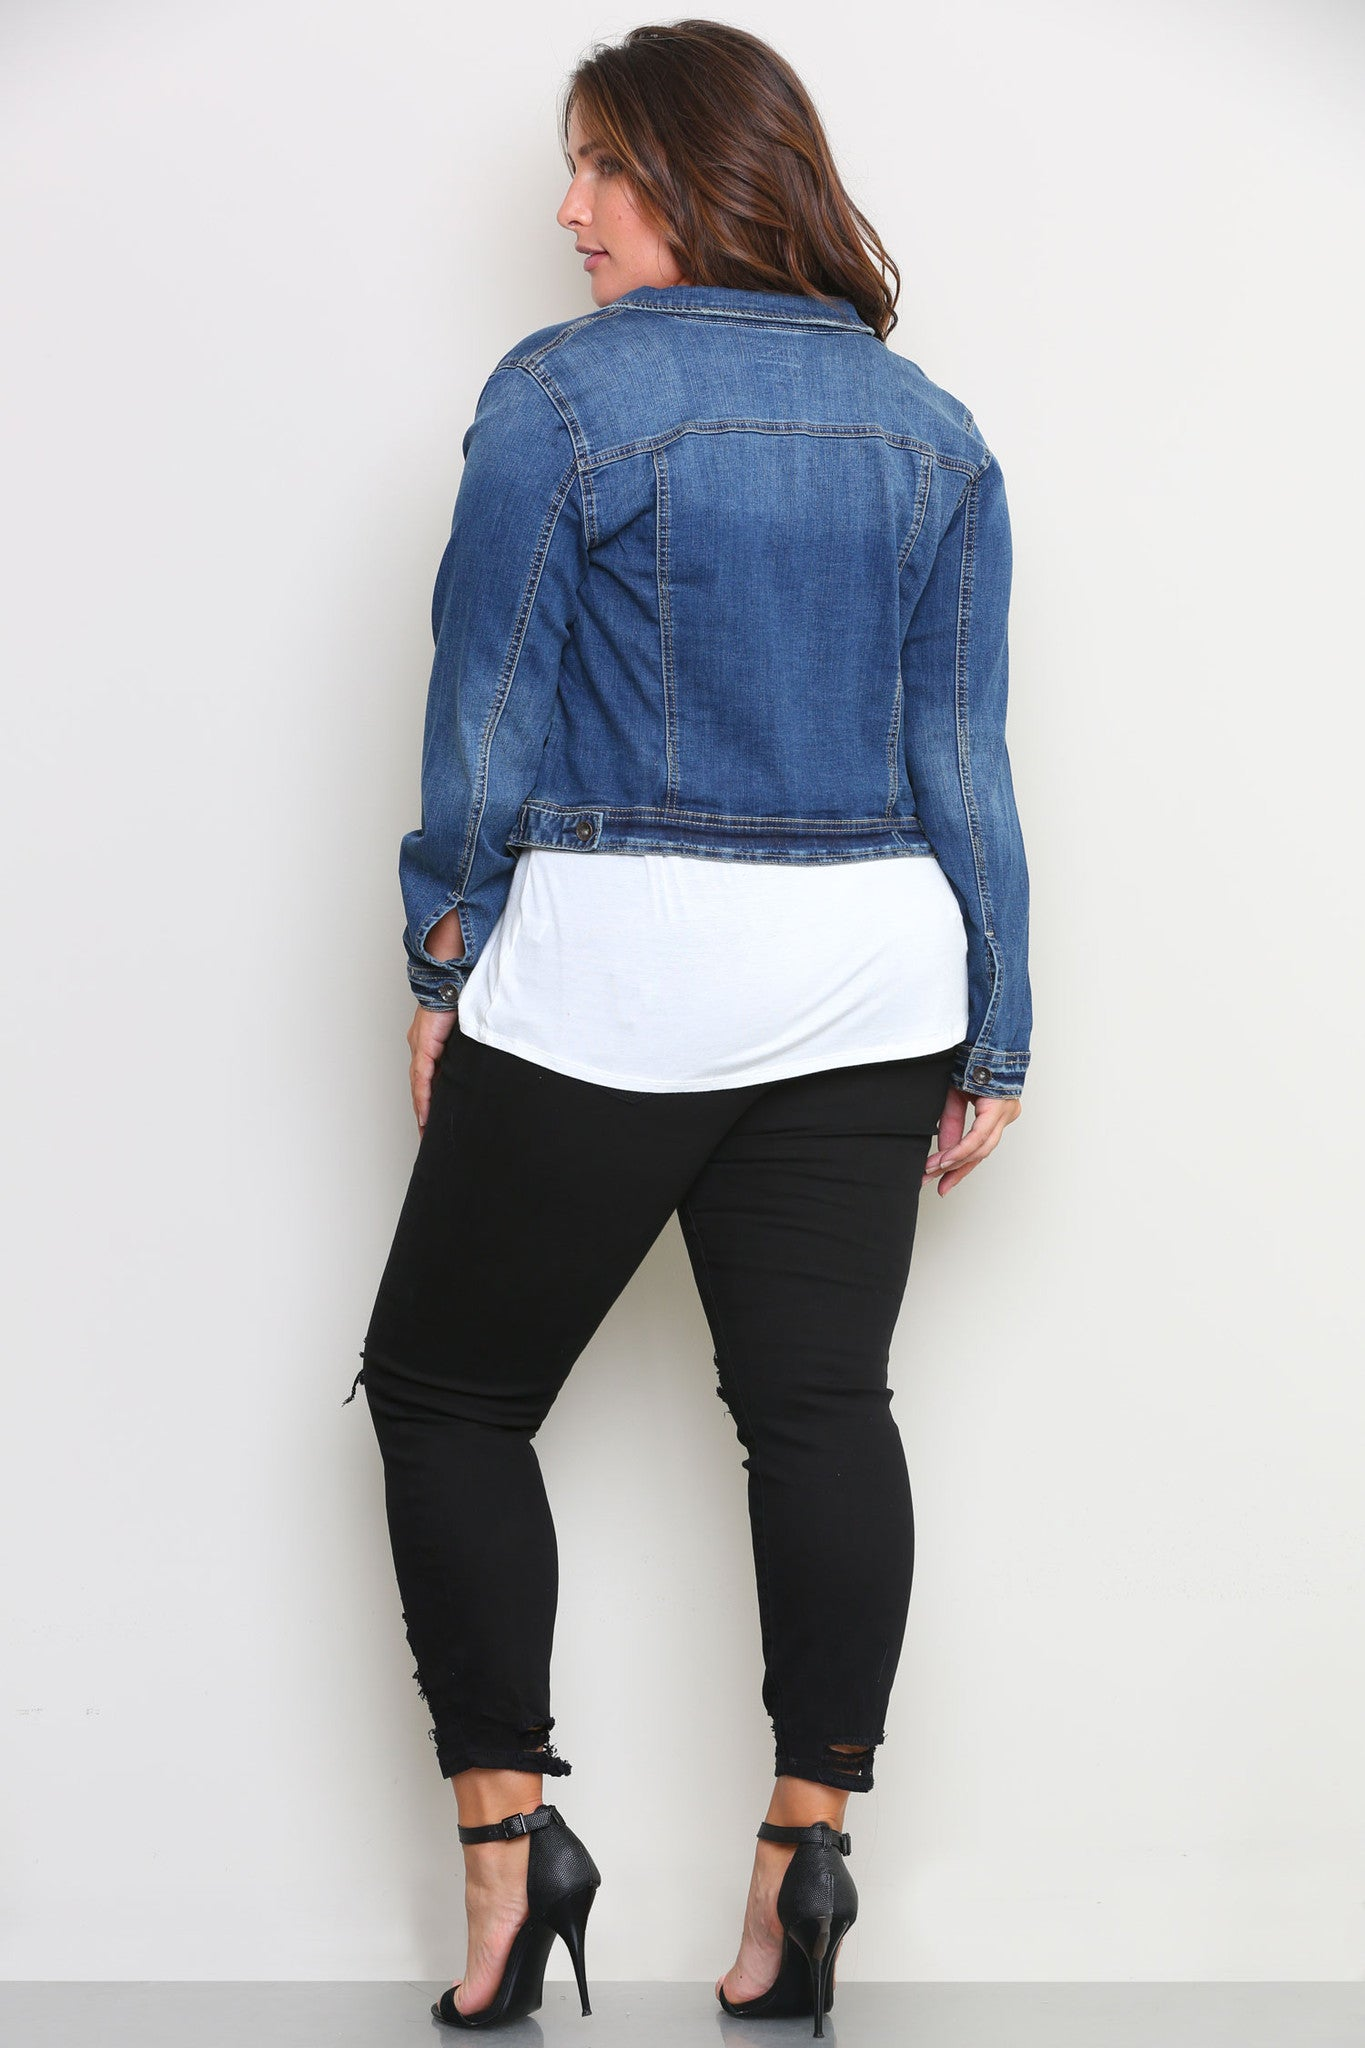 BEVERLY DENIM JACKET - Glam Envy - 3